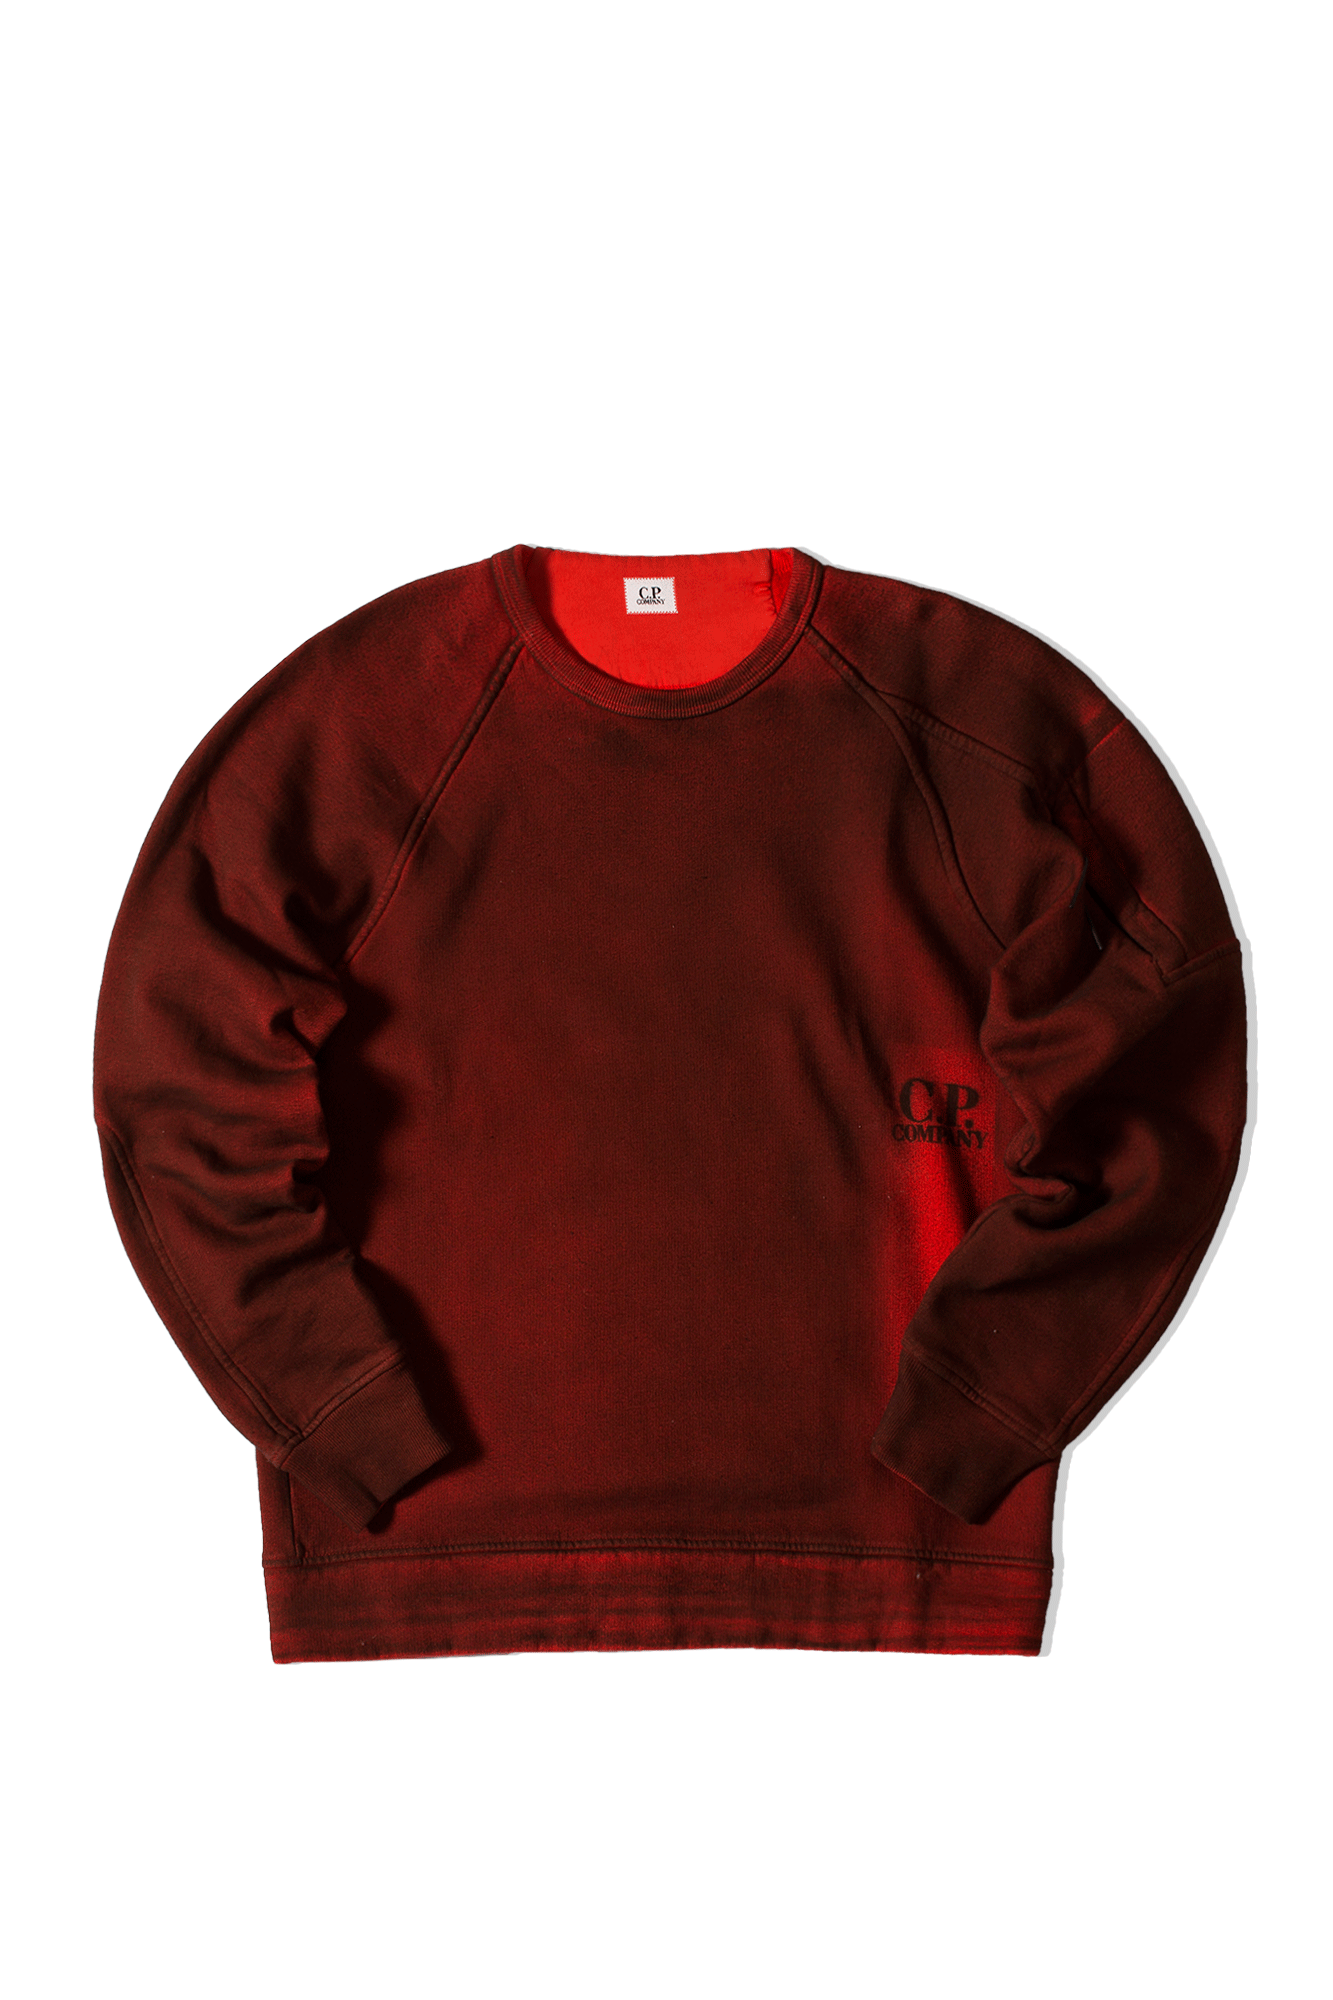 Sweatshirt - Crew Neck Red